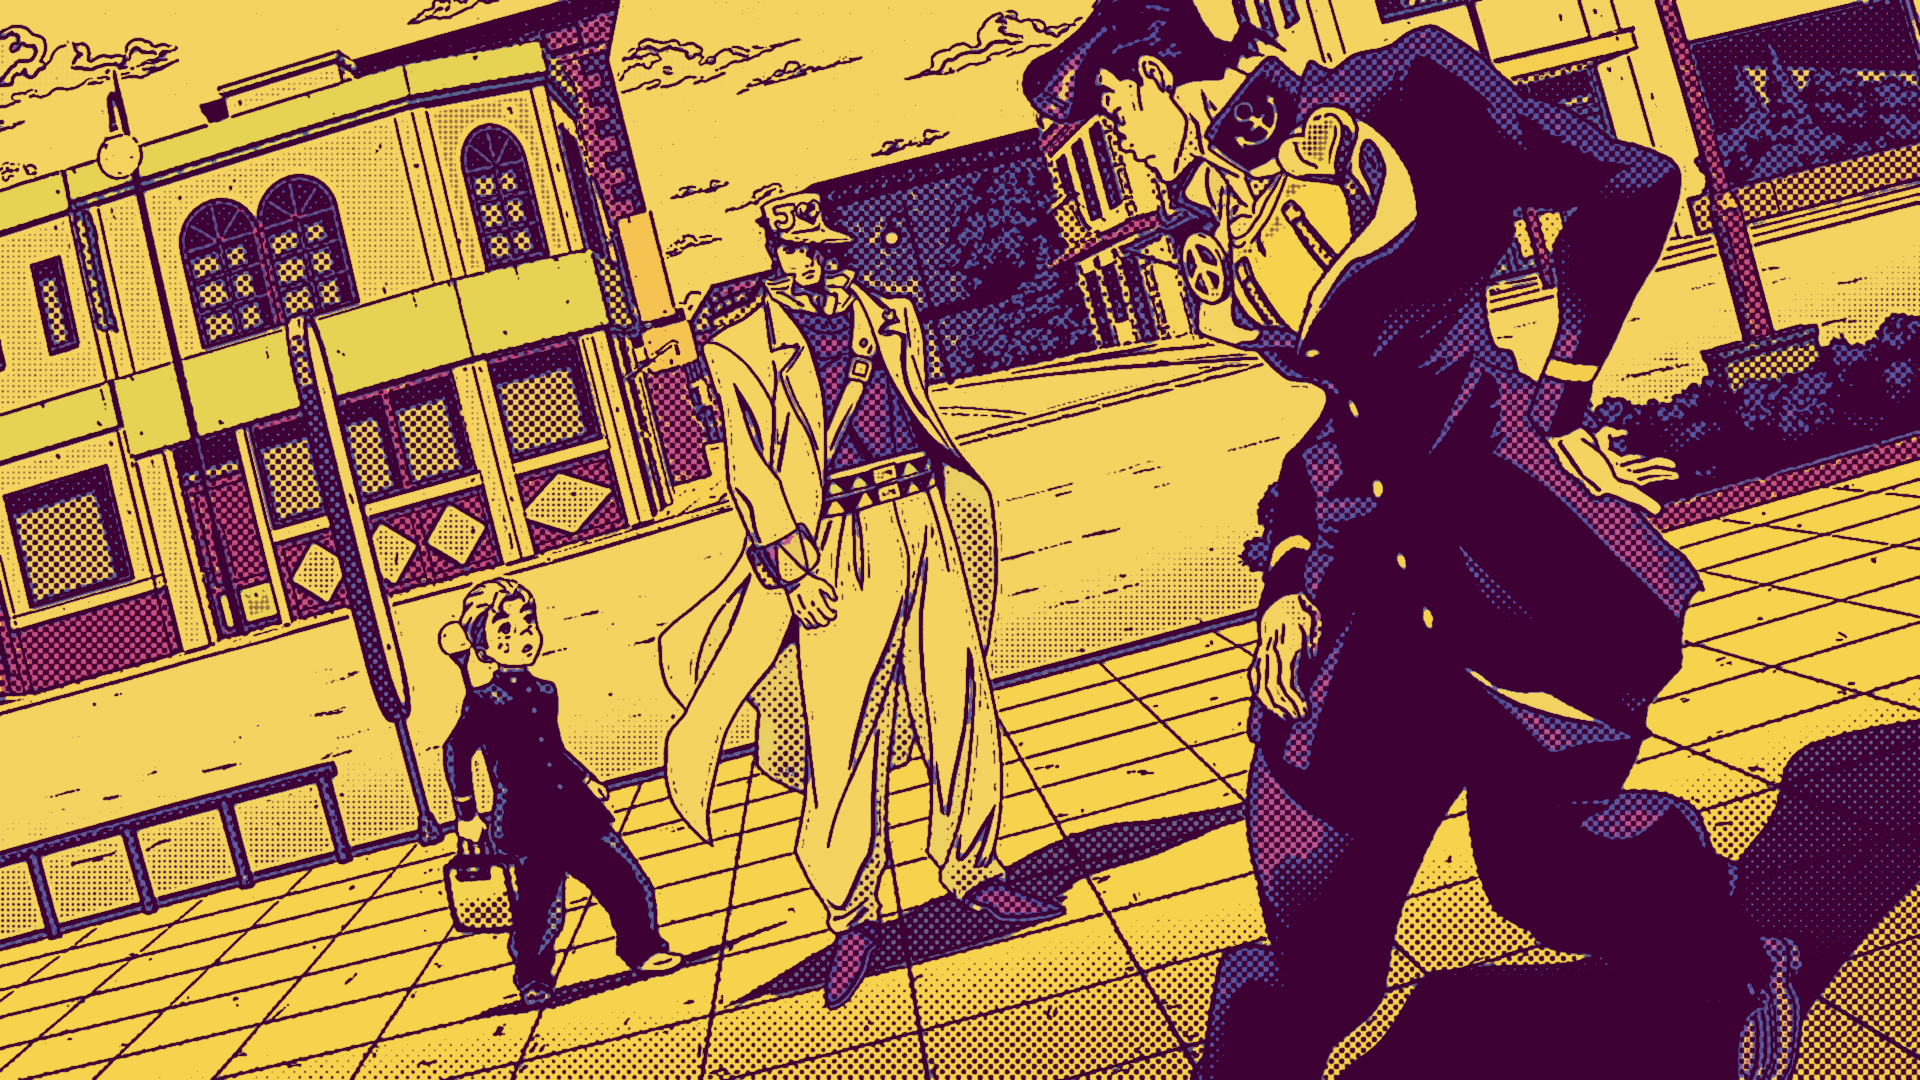 Jojo S Bizarre Adventure Hd Wallpaper Background Image 1920x1080 Id 1080719 Wallpaper Abyss